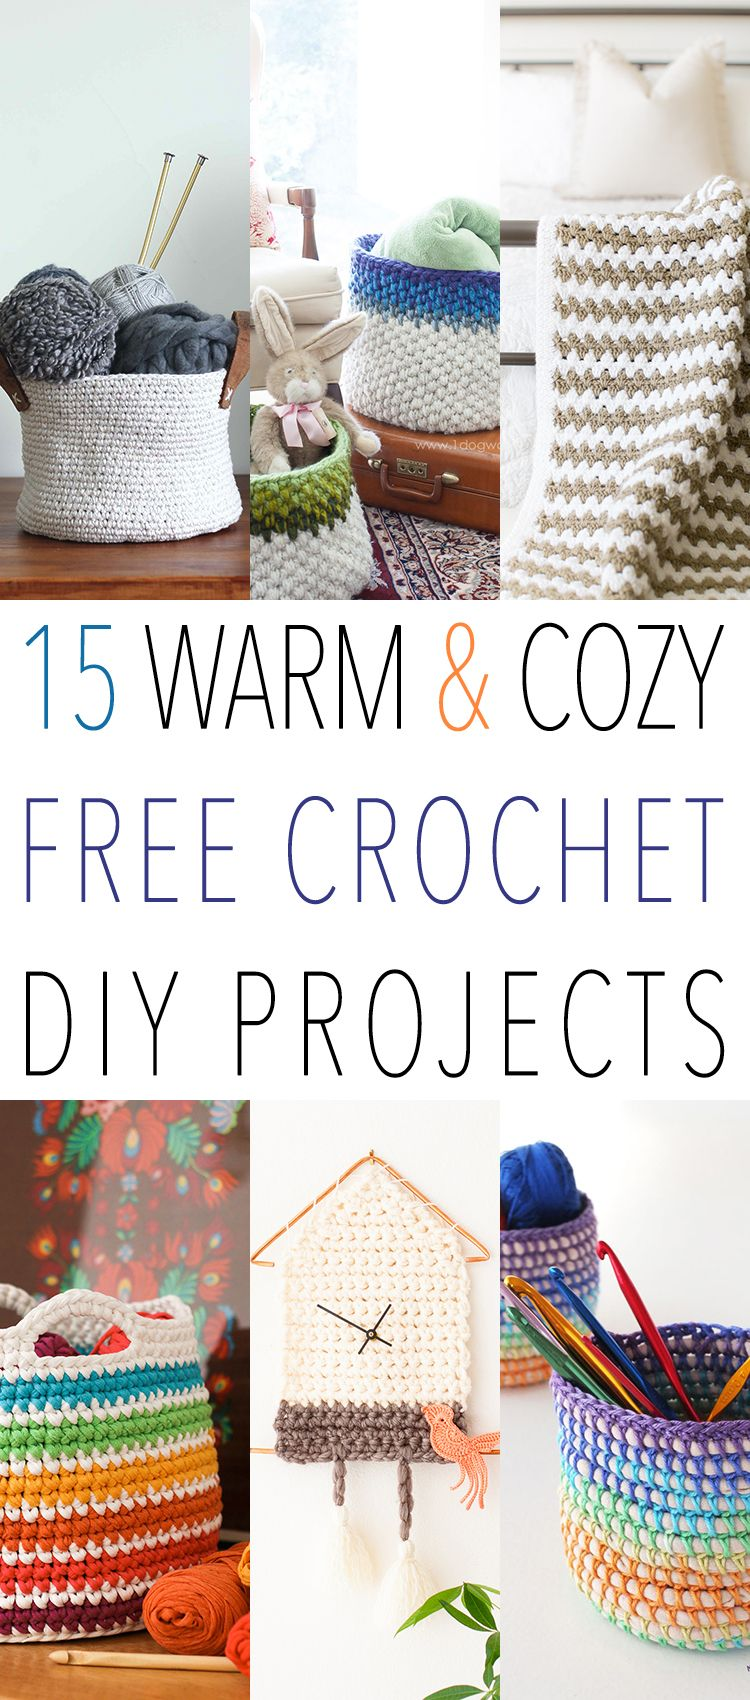 15 warm and cozy free crochet diy projects free crochet free 15 warm and cozy free crochet diy projects bankloansurffo Gallery